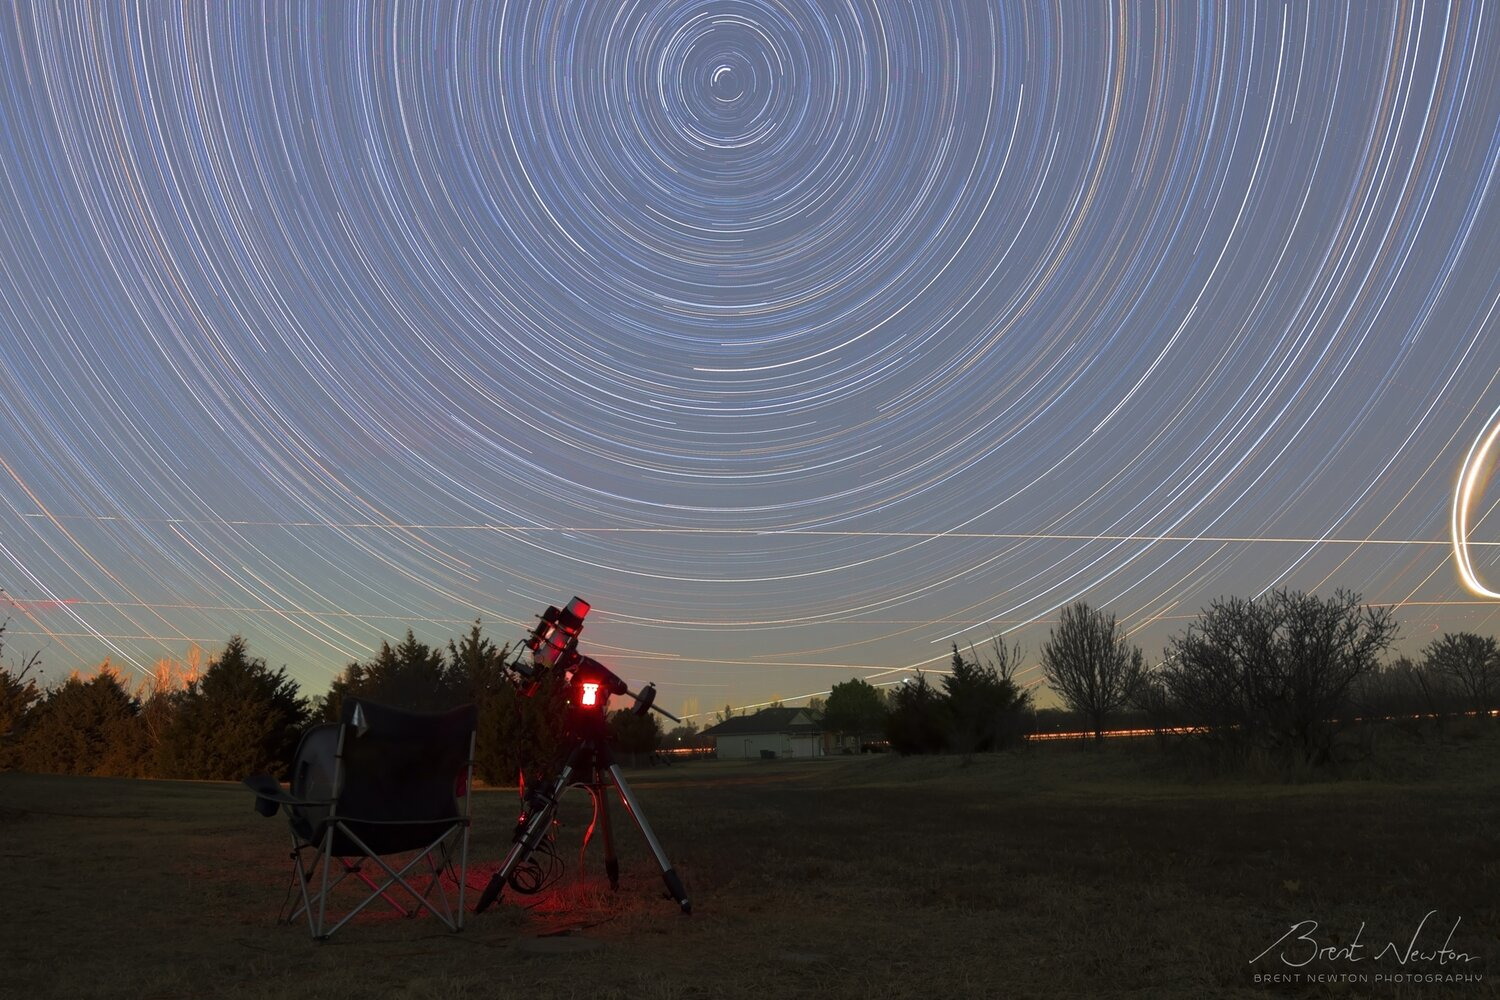 Star Trails taken with a T3i + Rokinon 14mm lens in early 2019